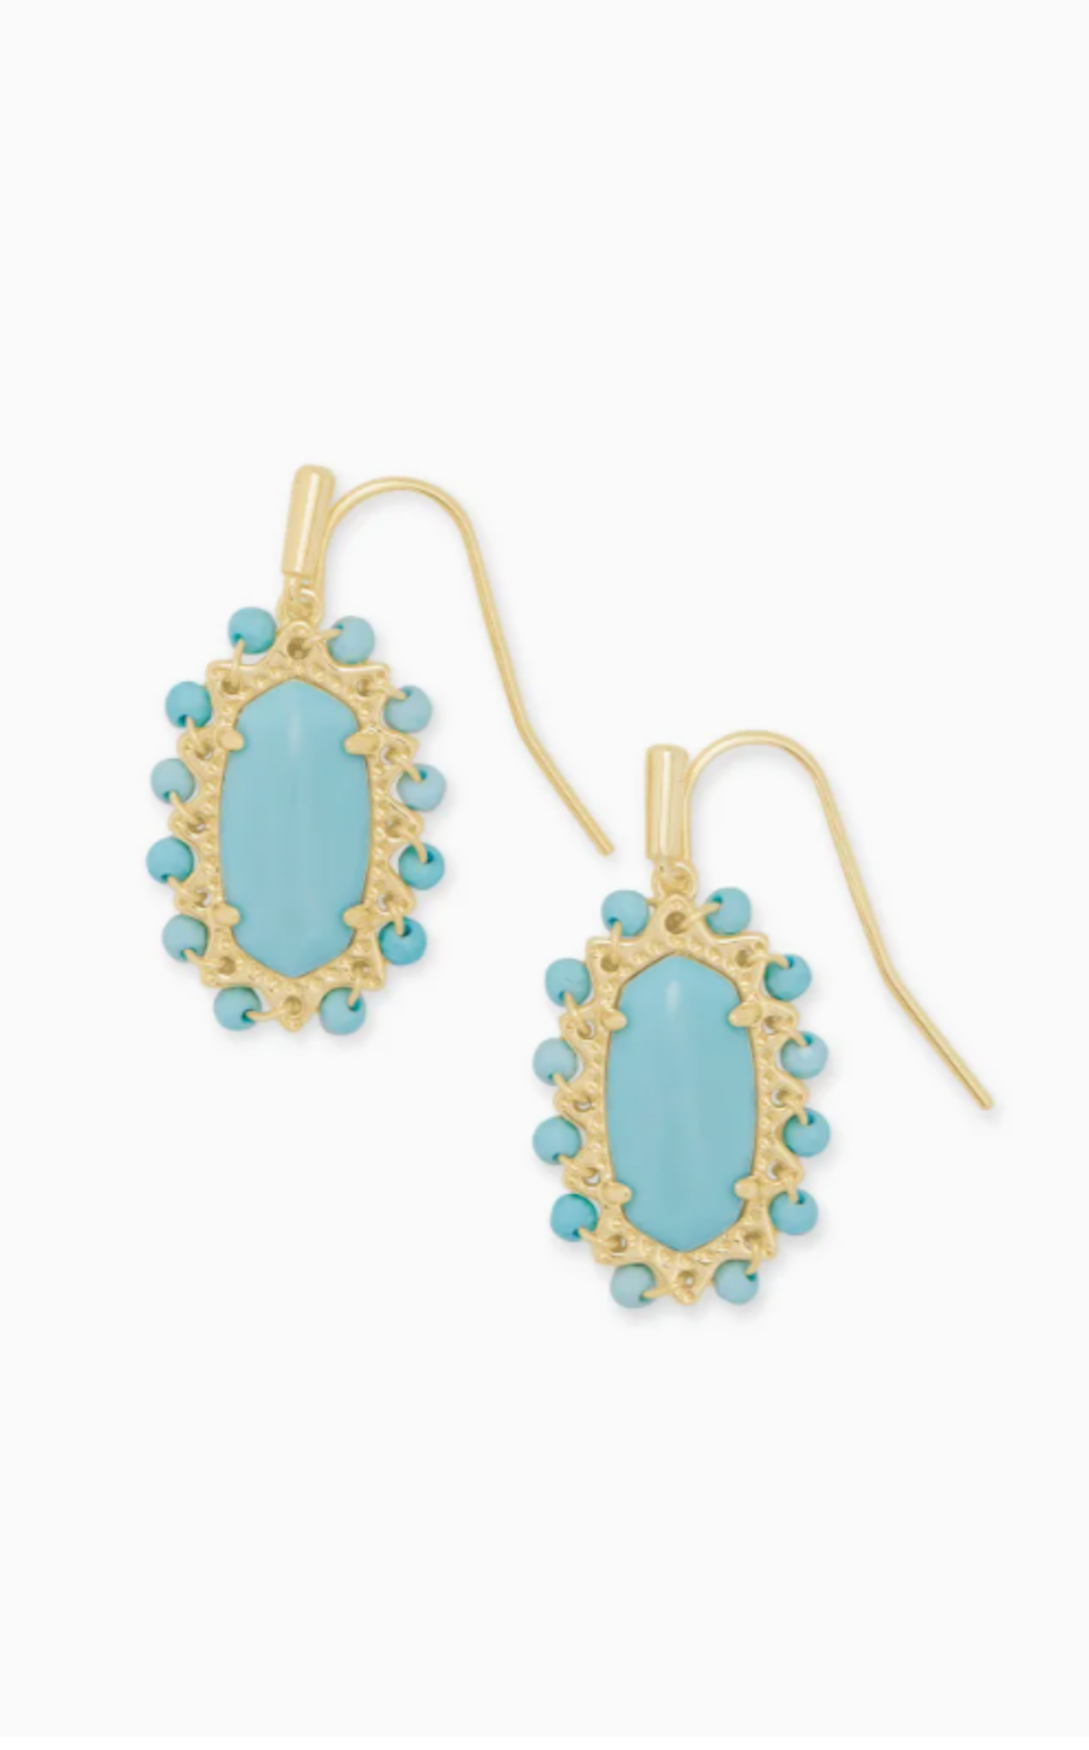 Beaded Lee Gold Drop Earrings - Light Blue Magnesite